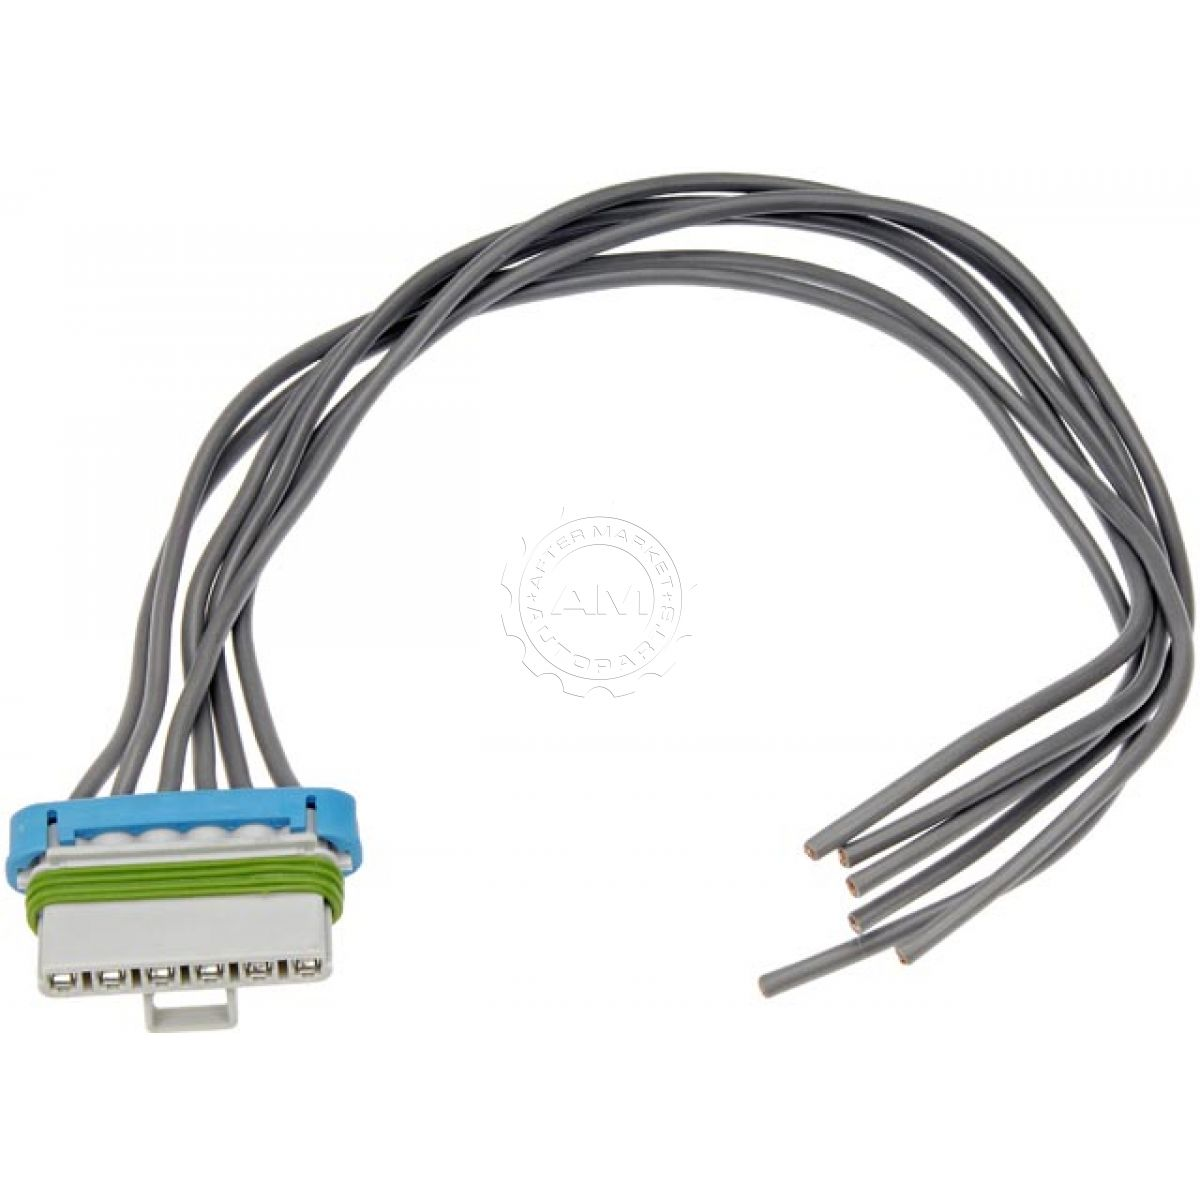 Dorman 645-542 Blower Resistor Wiring Harness Plug Pigtail for Buick Chevy  GMC